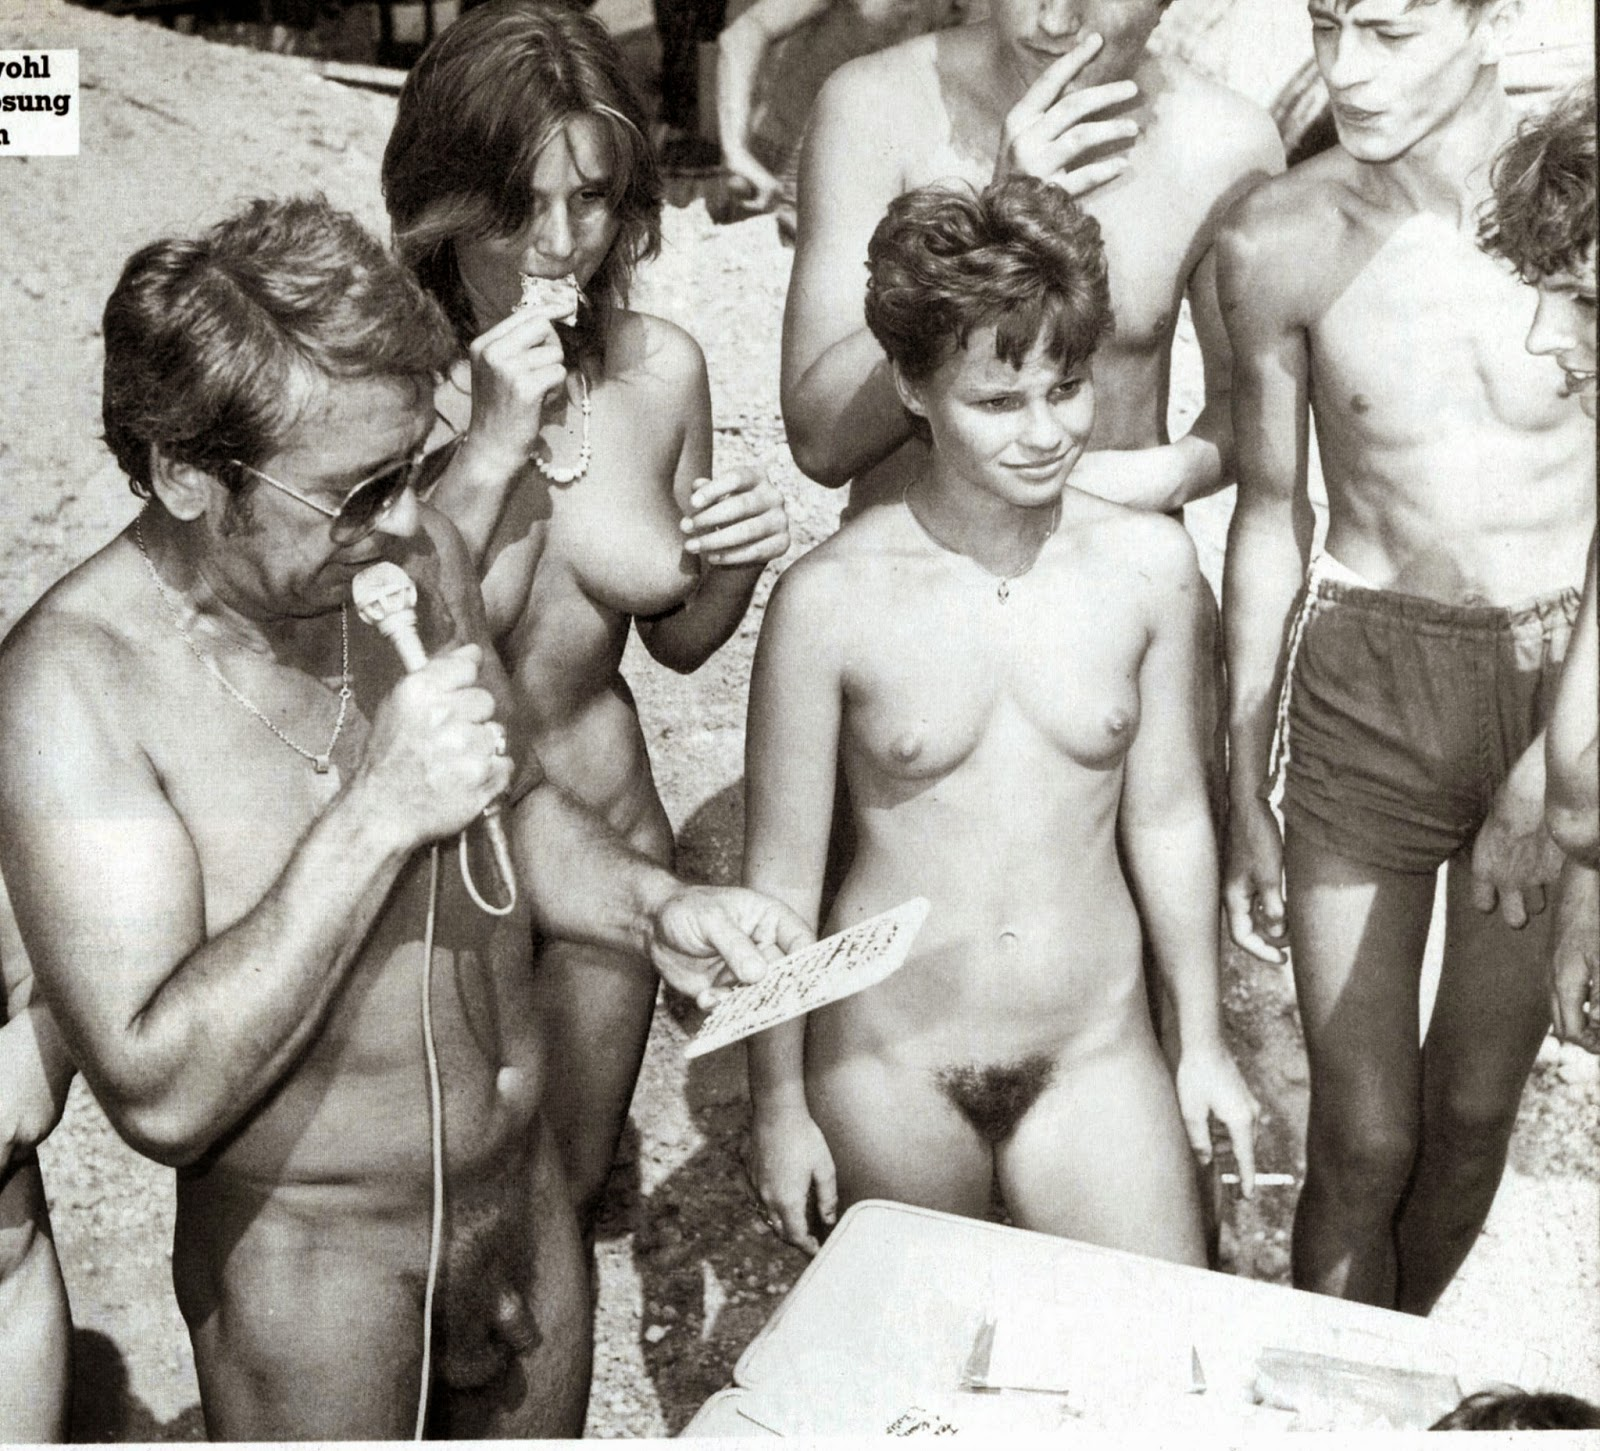 Nudism - Photo - Hq  Nudism Retro Teens Girls-2982